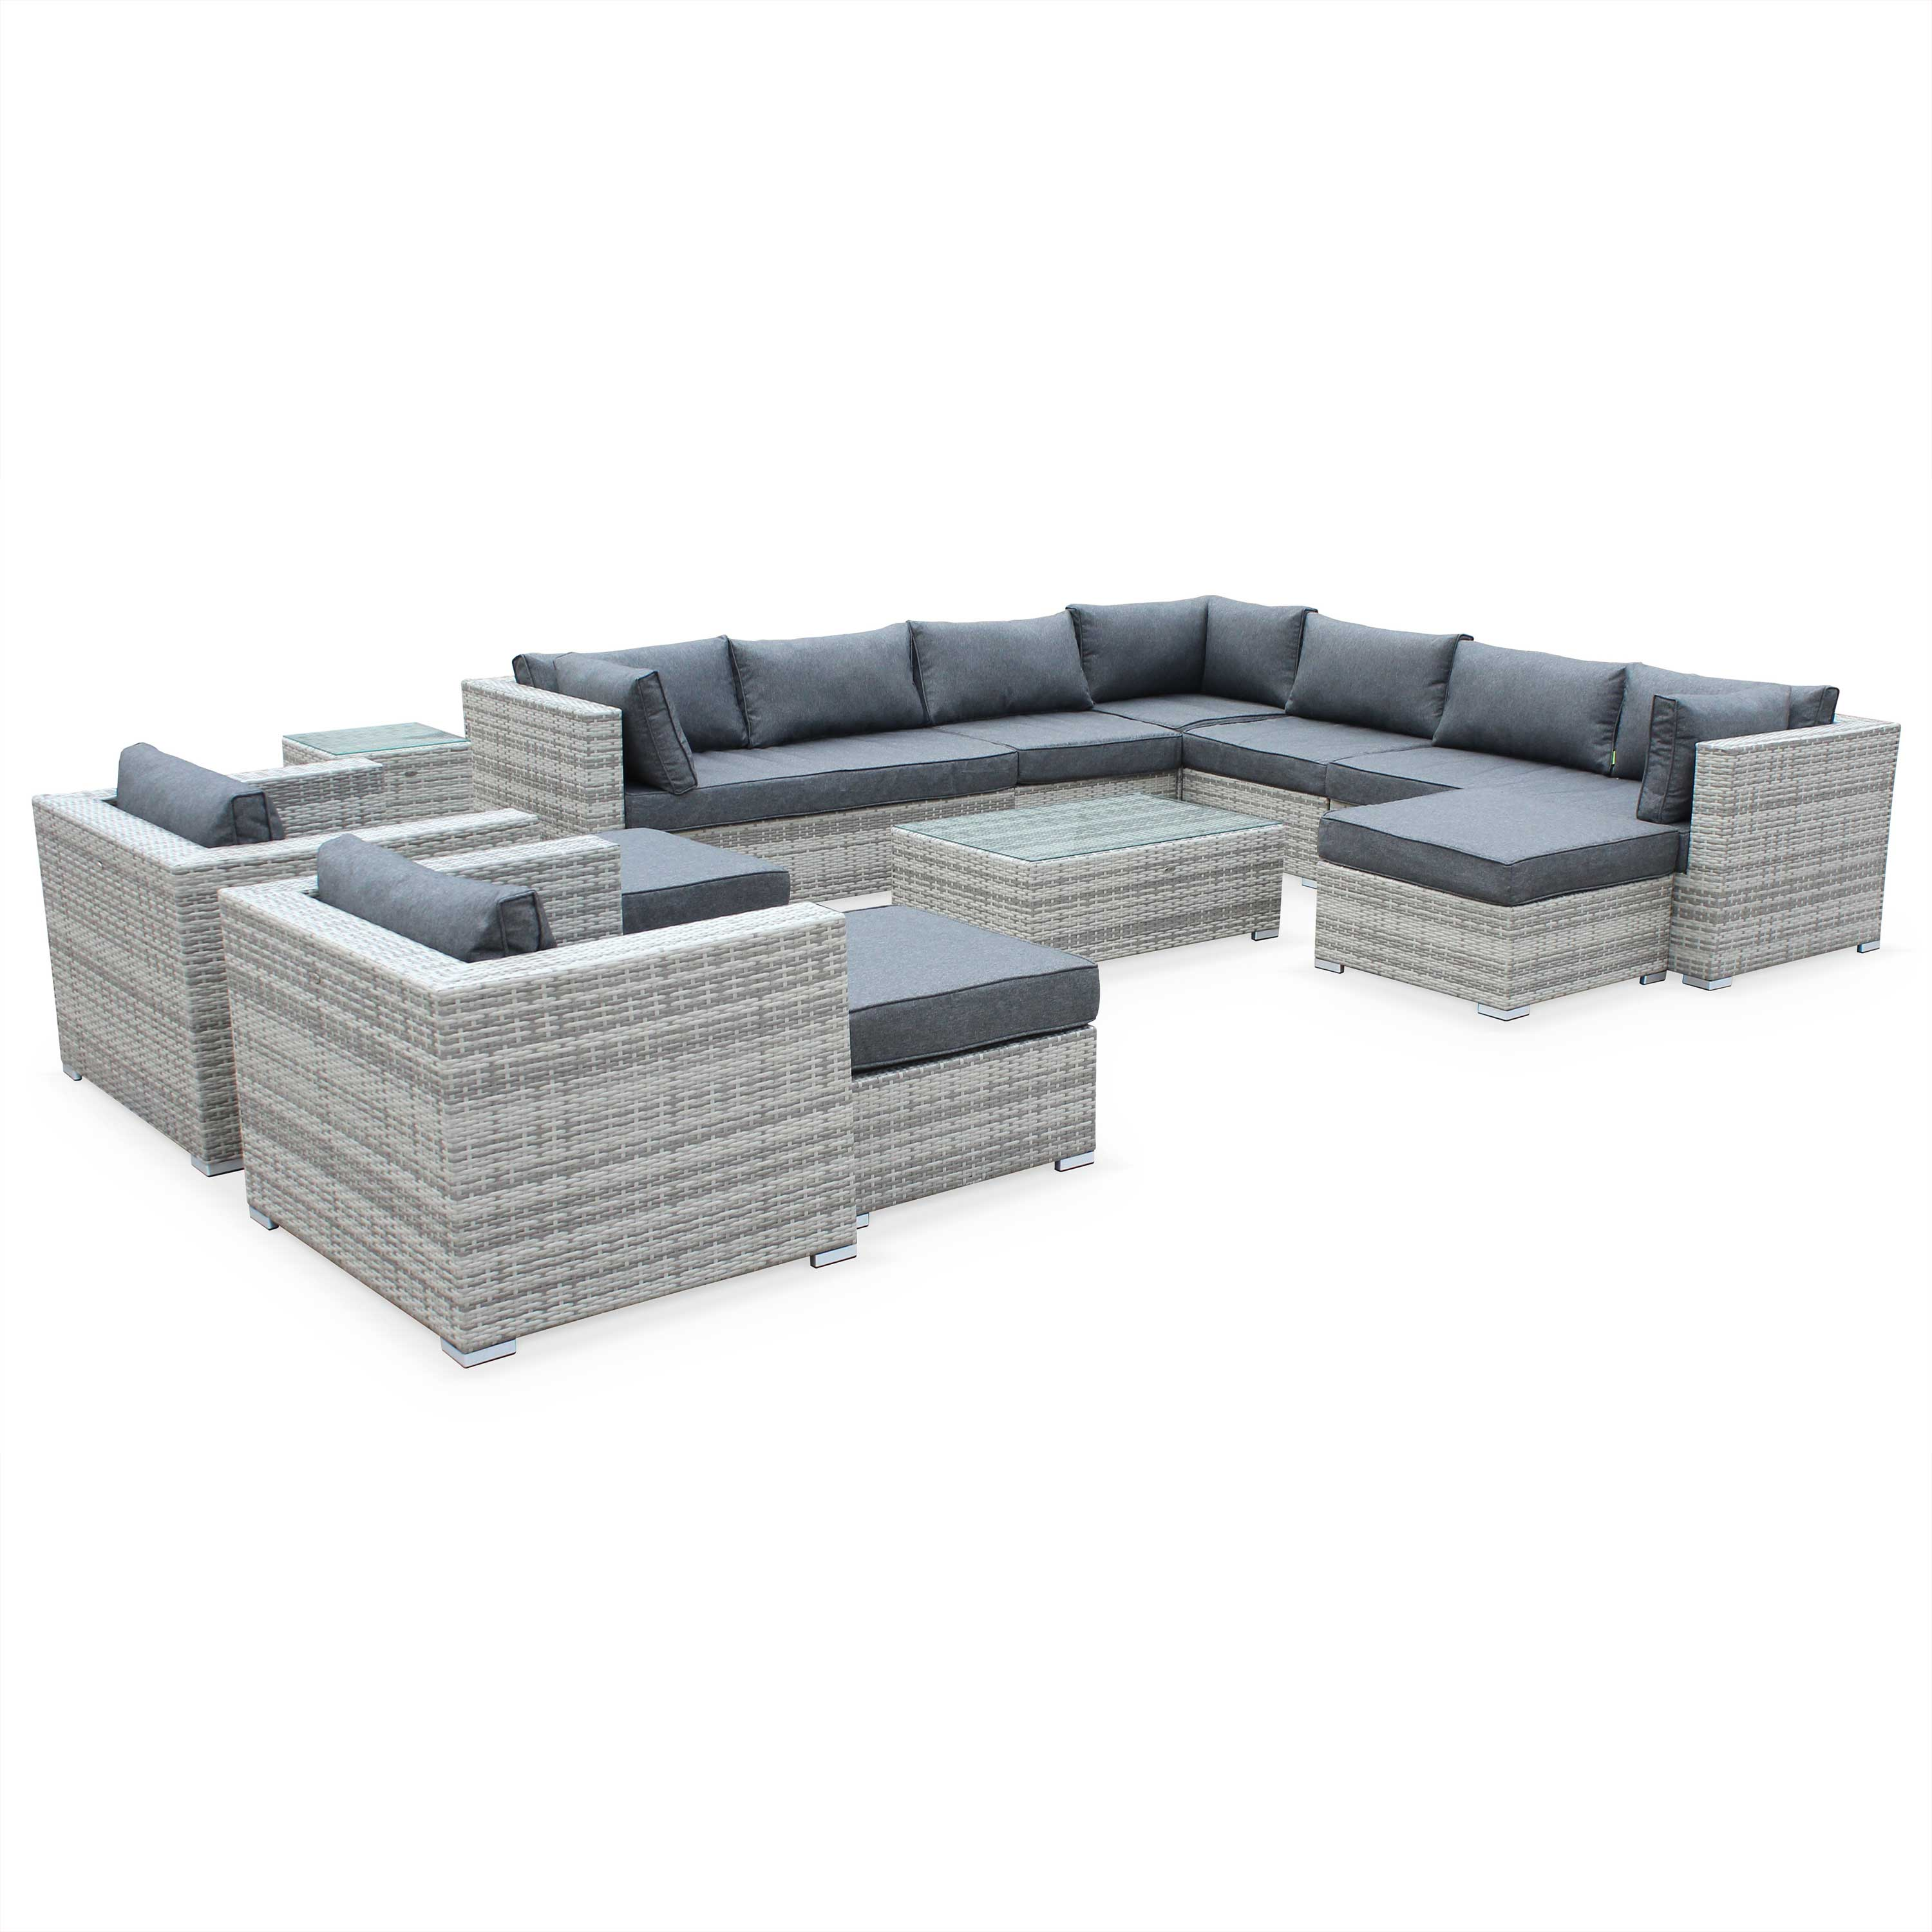 TRIPOLI 13 Seater Outdoor Lounge Set Mix Grey Wicker/Grey Cushions Aluminium Frame